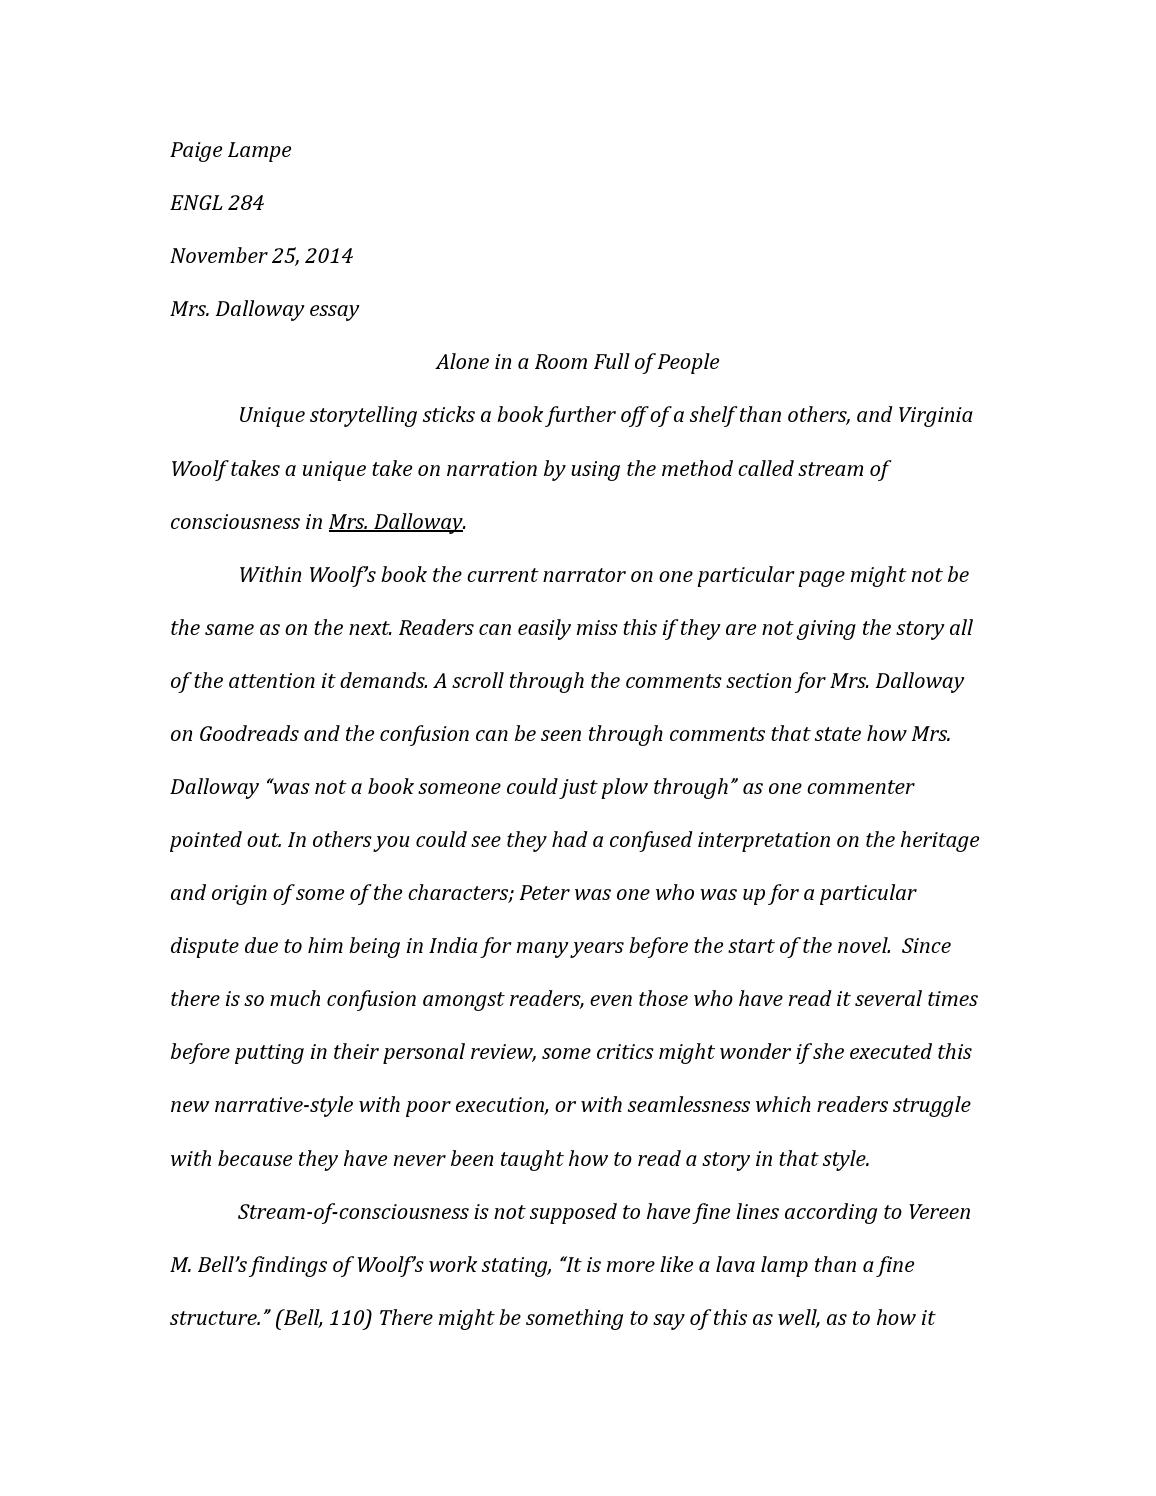 002 Mrs Dalloway Essay Page 1 Marvelous Critical Analysis Prompts